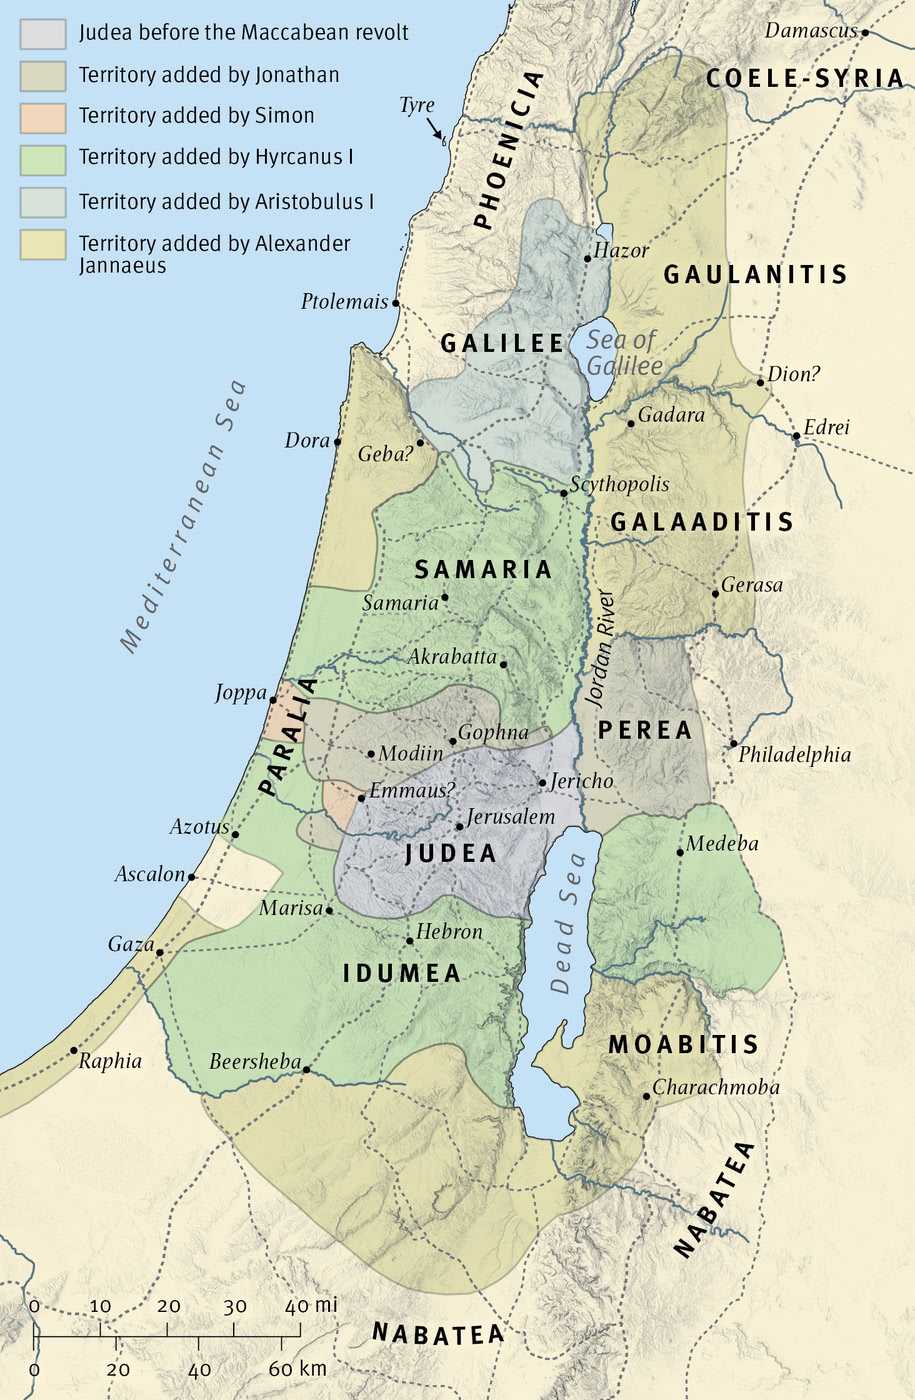 Map 9: Israel under the Maccabees